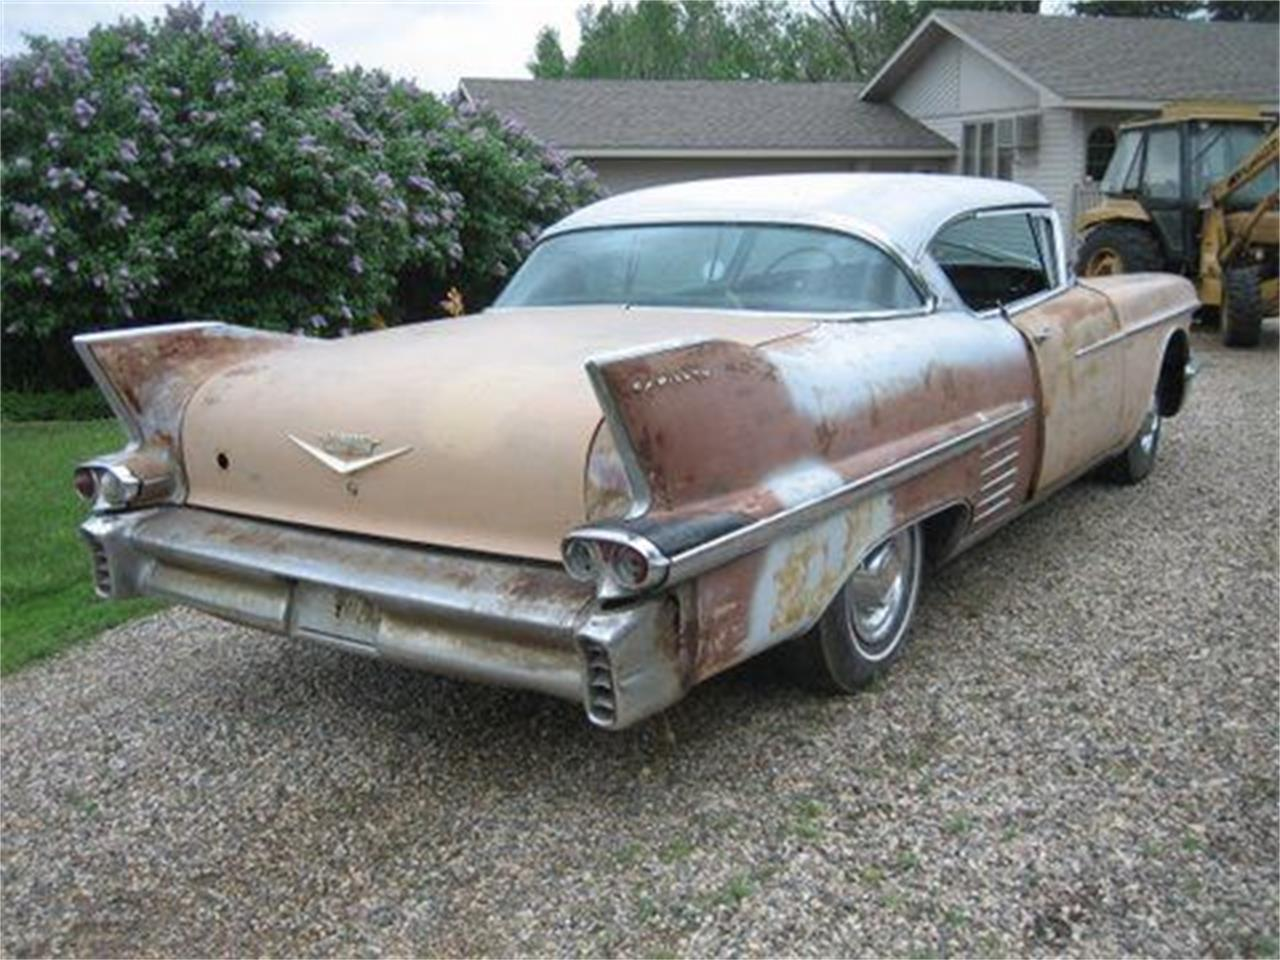 1958 Cadillac Coupe DeVille for sale in Cadillac, MI – photo 2